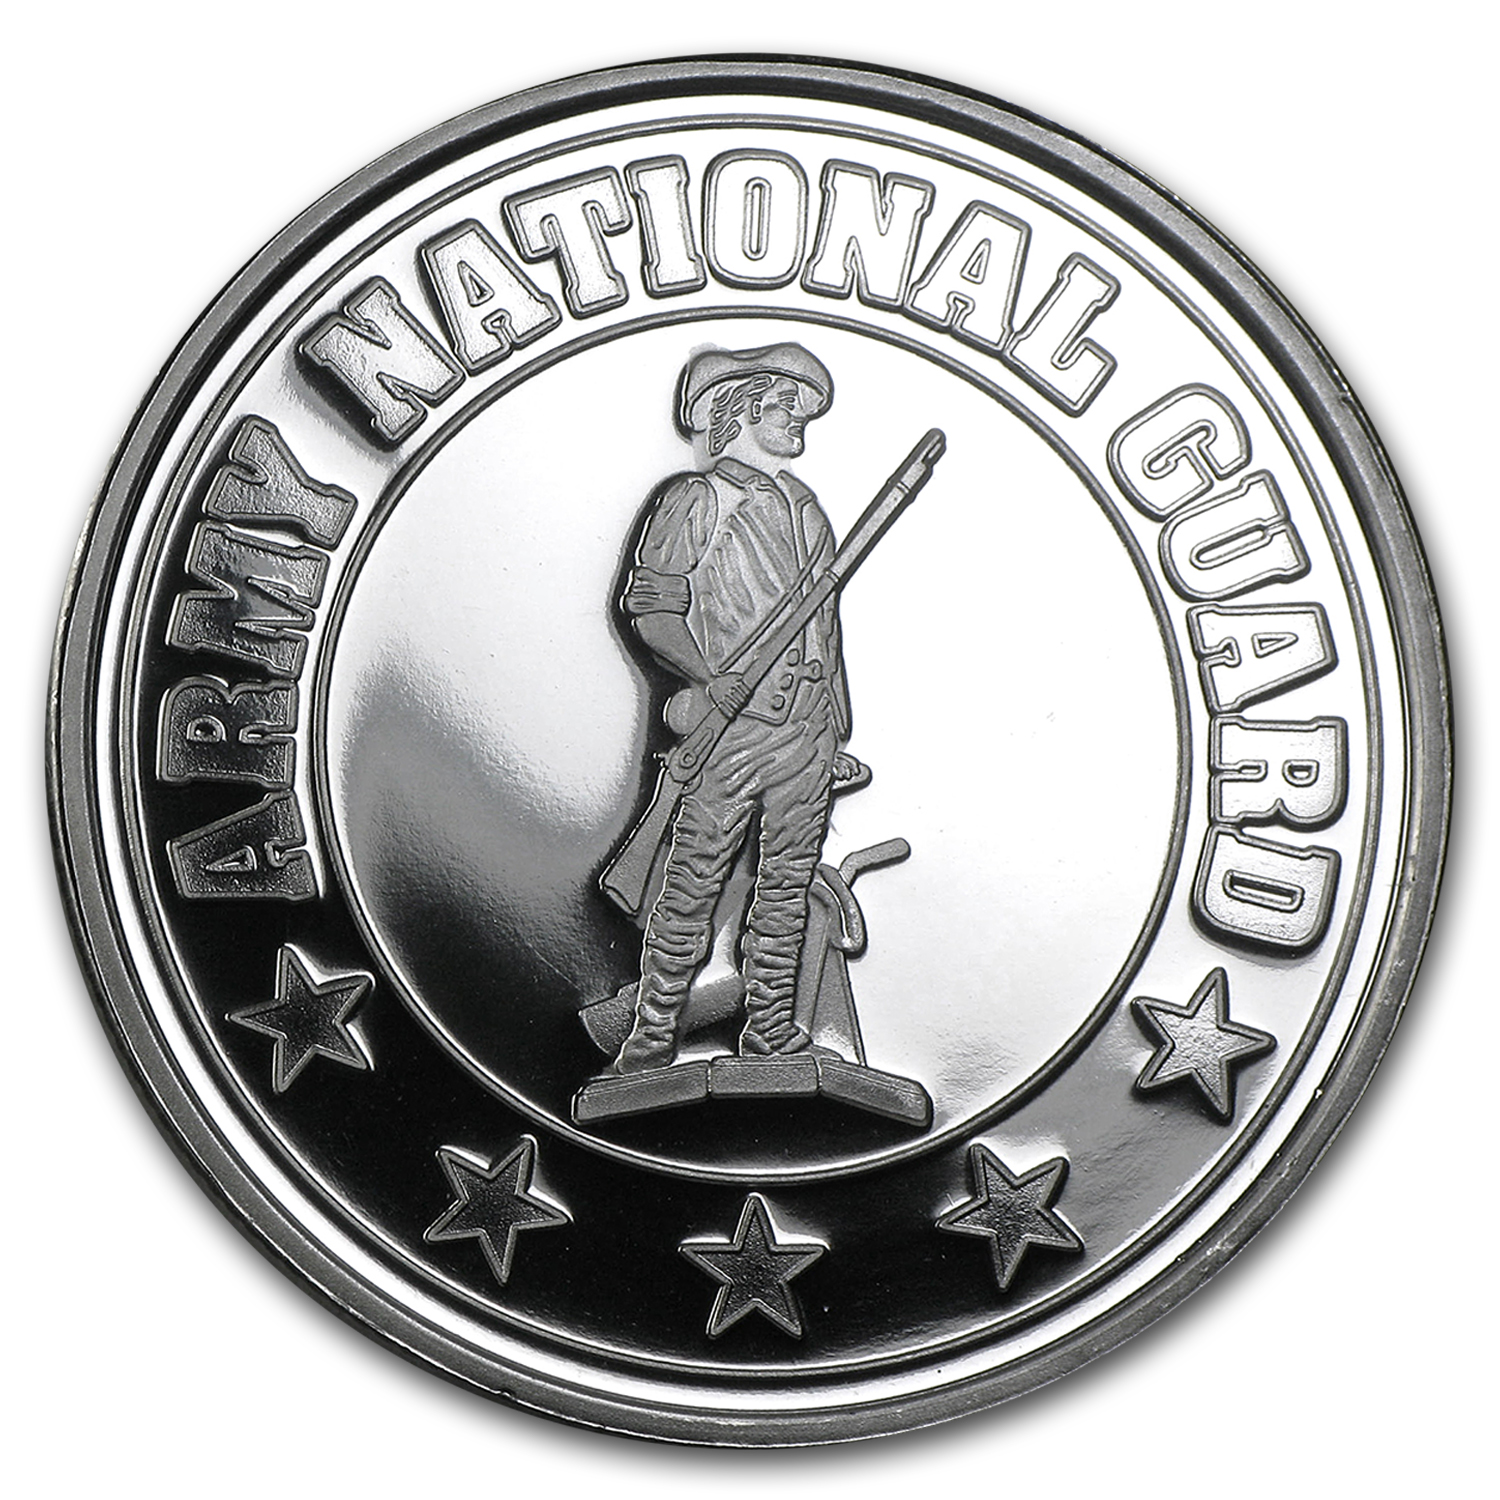 1 oz Silver Round - U.S. Army National Guard